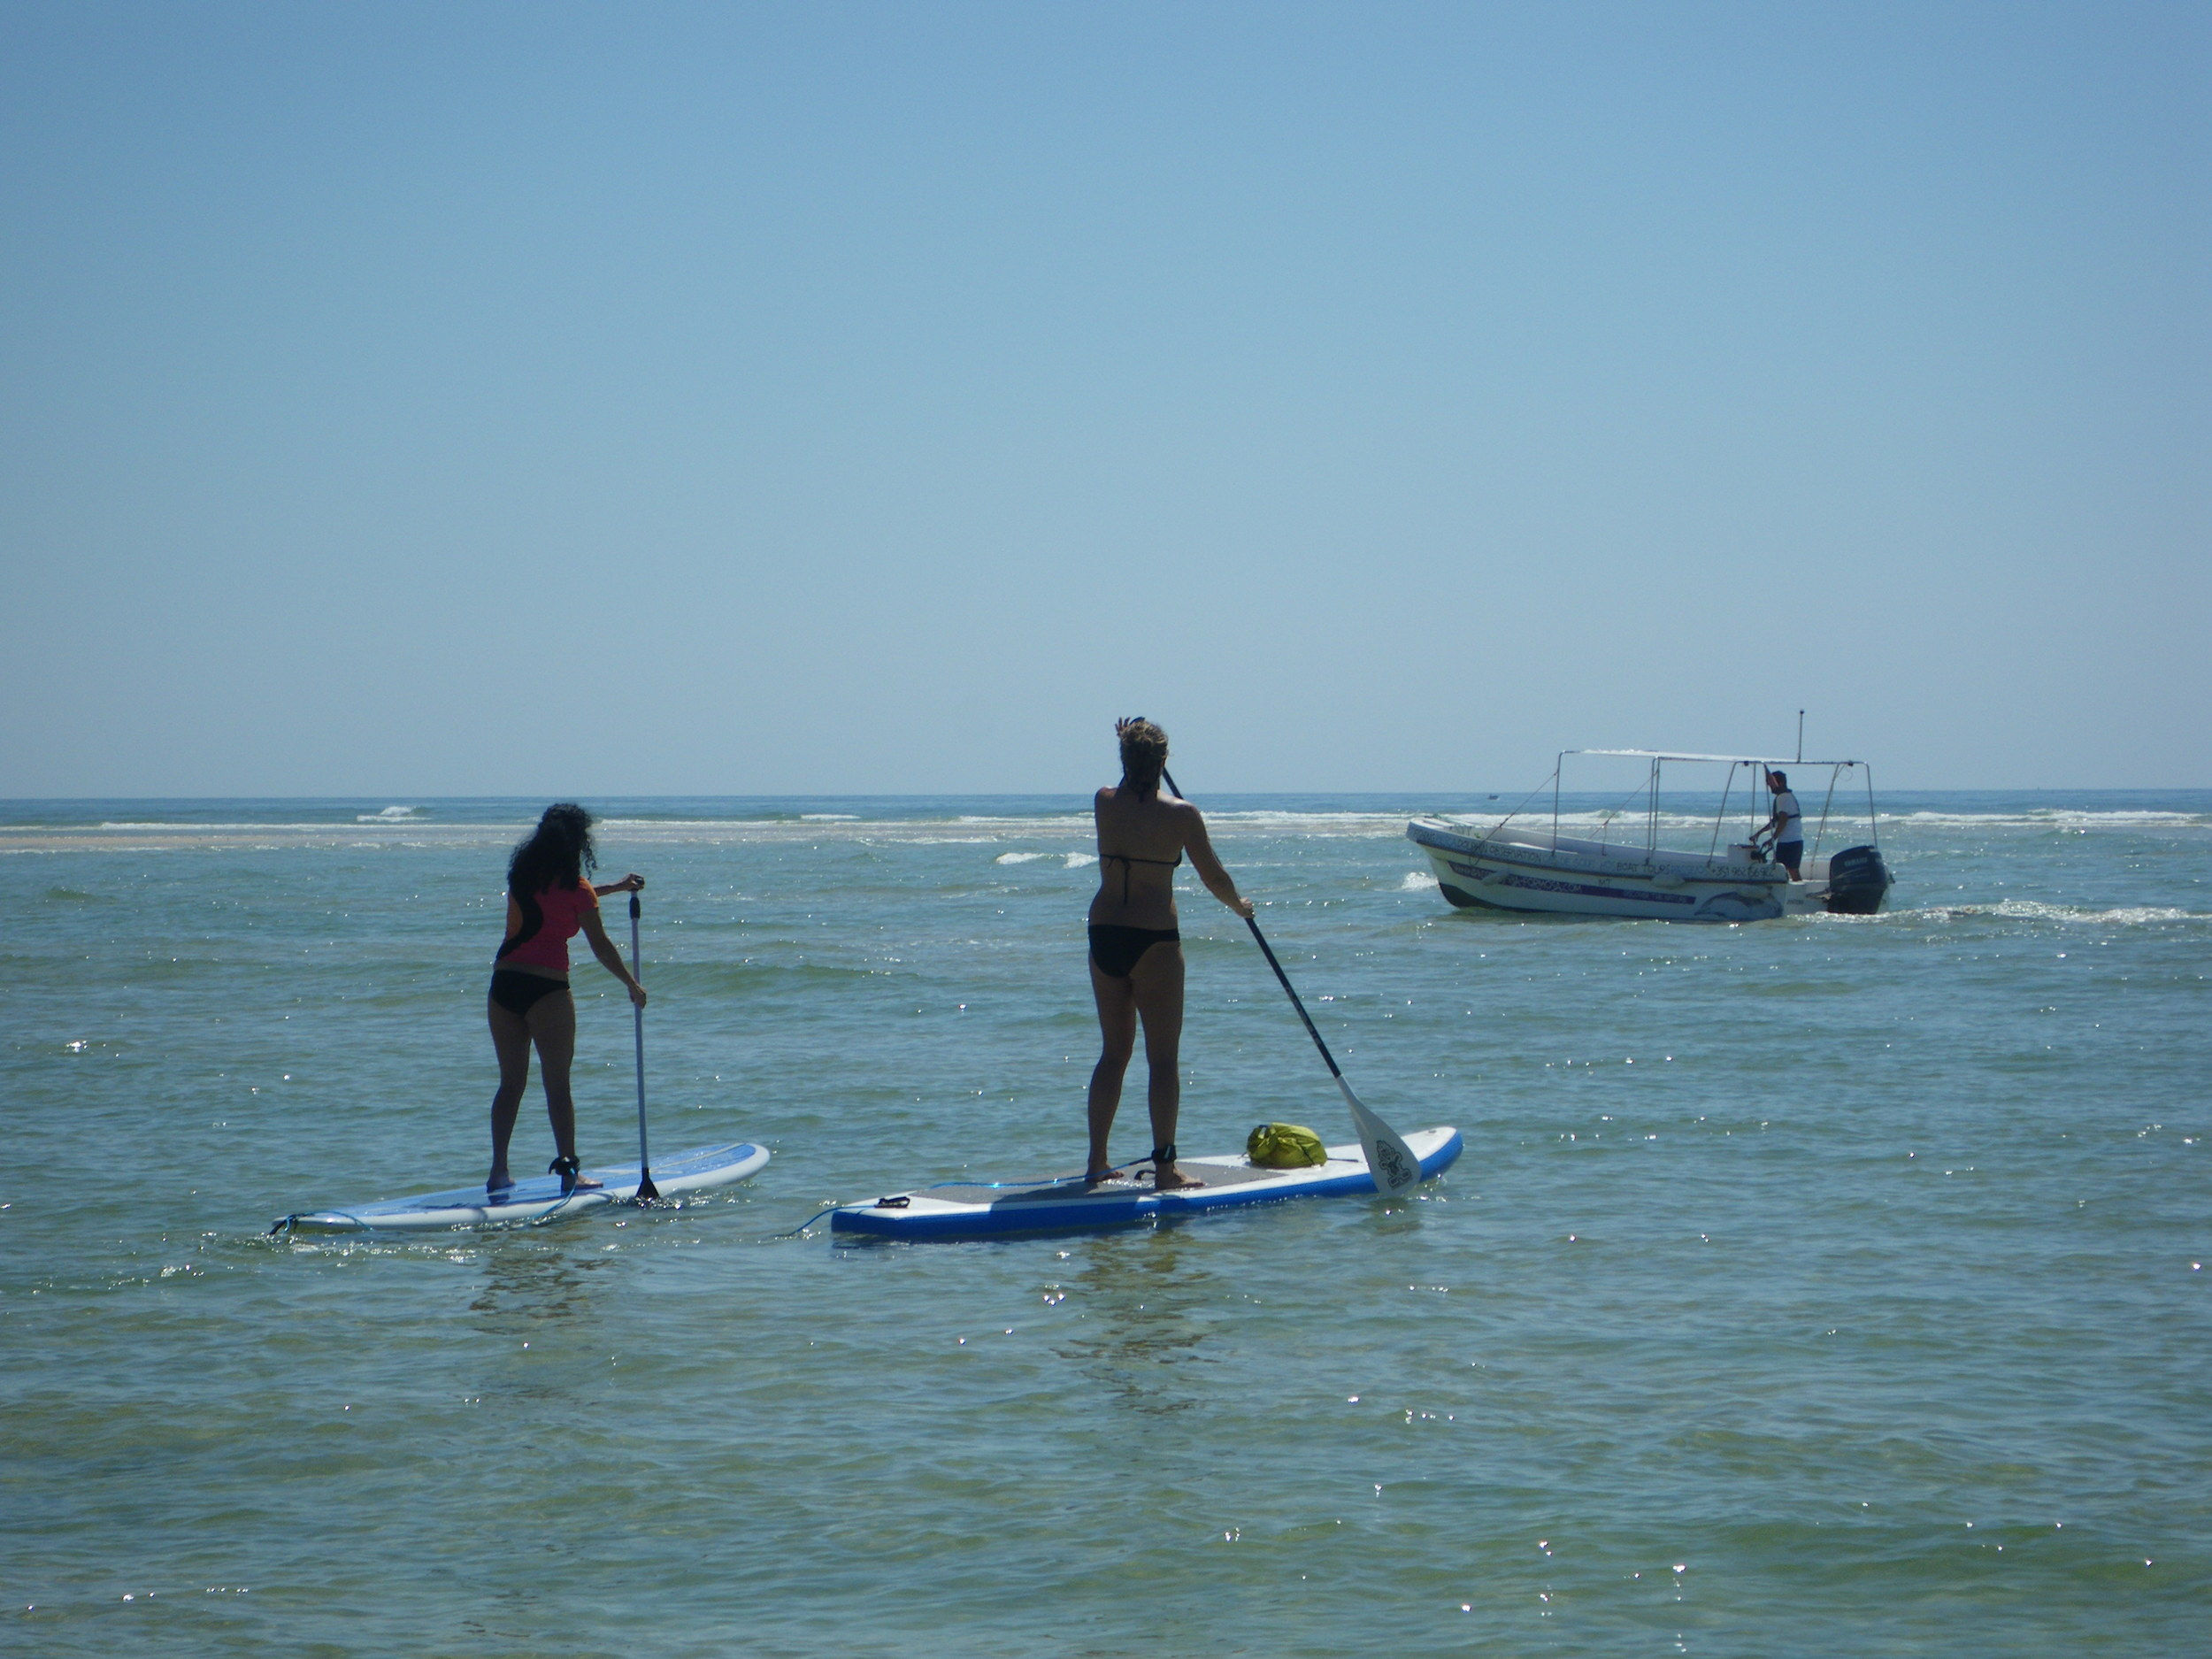 SUP Touring in the Algarve.